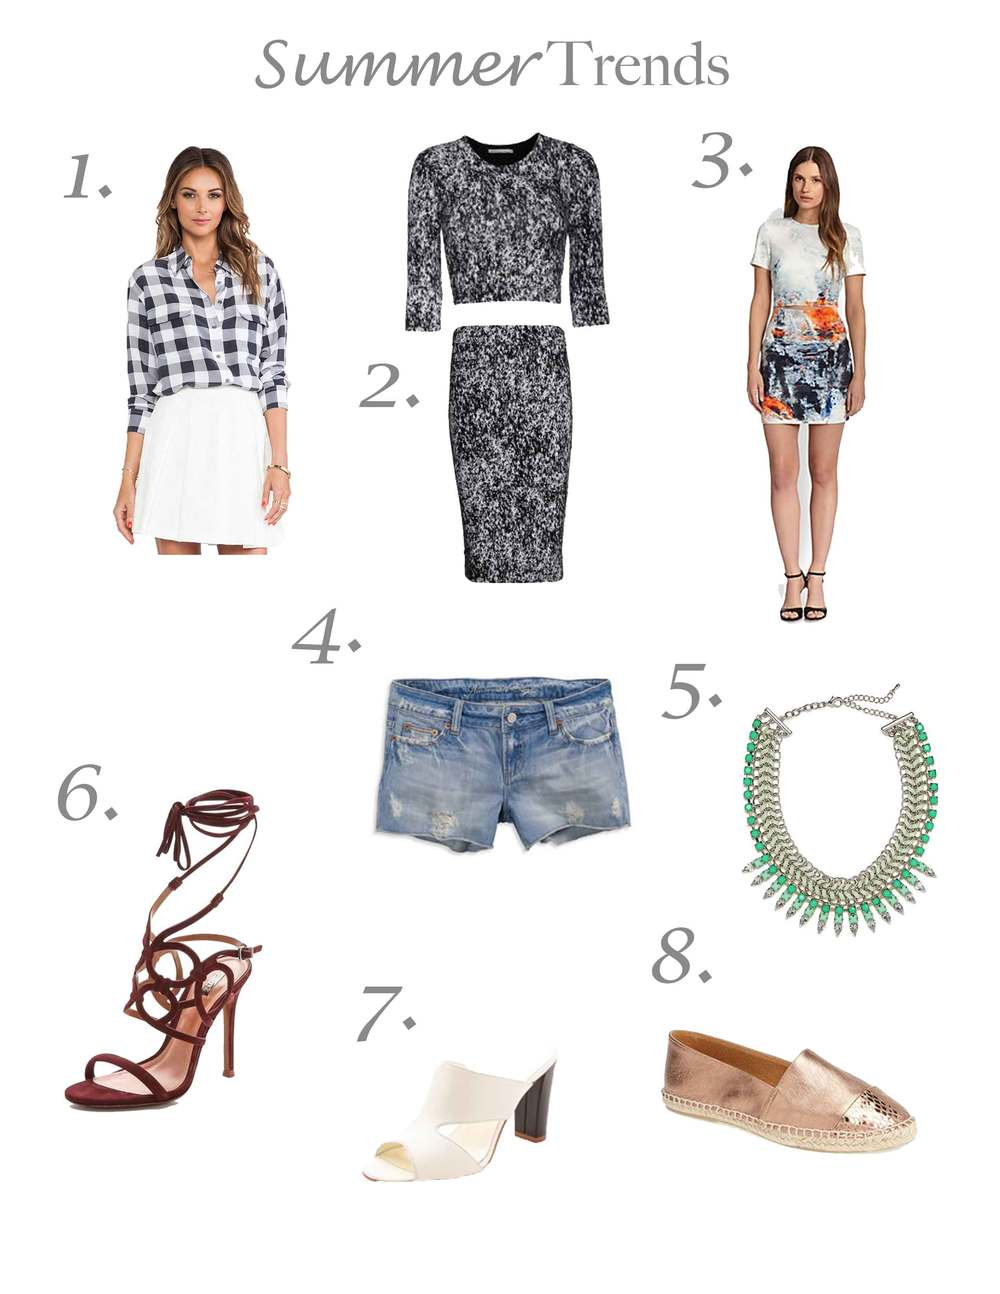 summer trends, equipment gingham blouse, mule, matching separates, Bec and Bridge, Bauble Bar, statement necklaces, denim cutoffs, gap, strappy stilettos, topshop